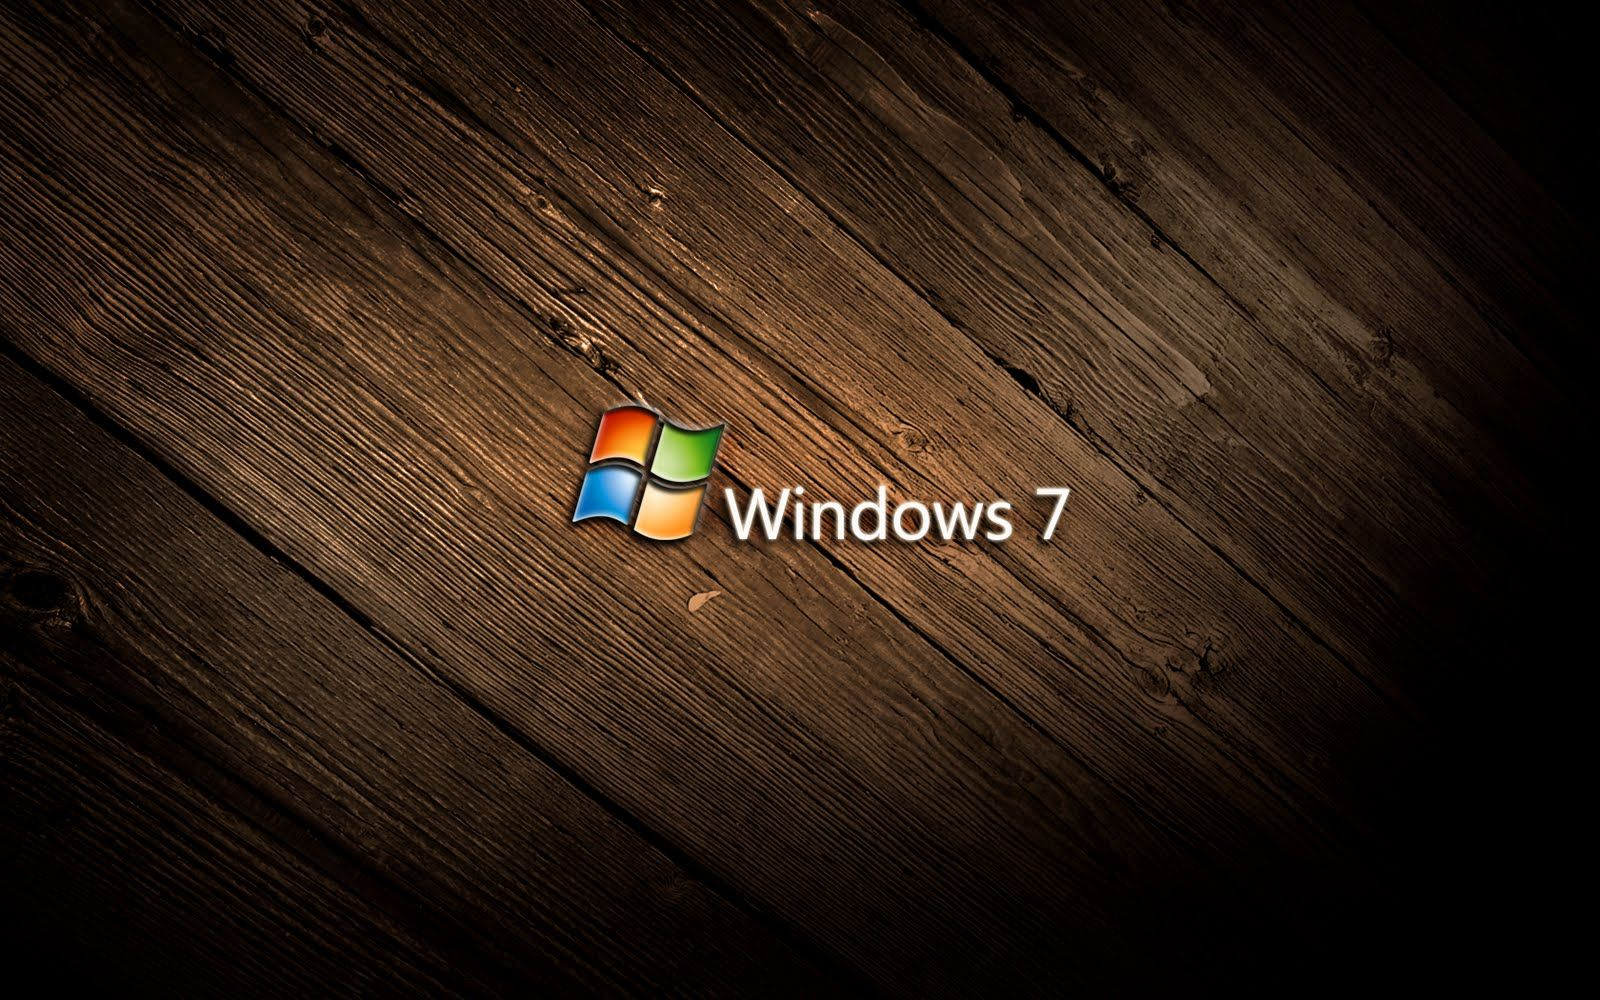 Download Wallpaper Windows Operating System Logo 1920 1080 Hd Windows 7 Wallpapers 108 Windows Wallpaper Hd Wallpapers For Laptop Windows Desktop Wallpaper